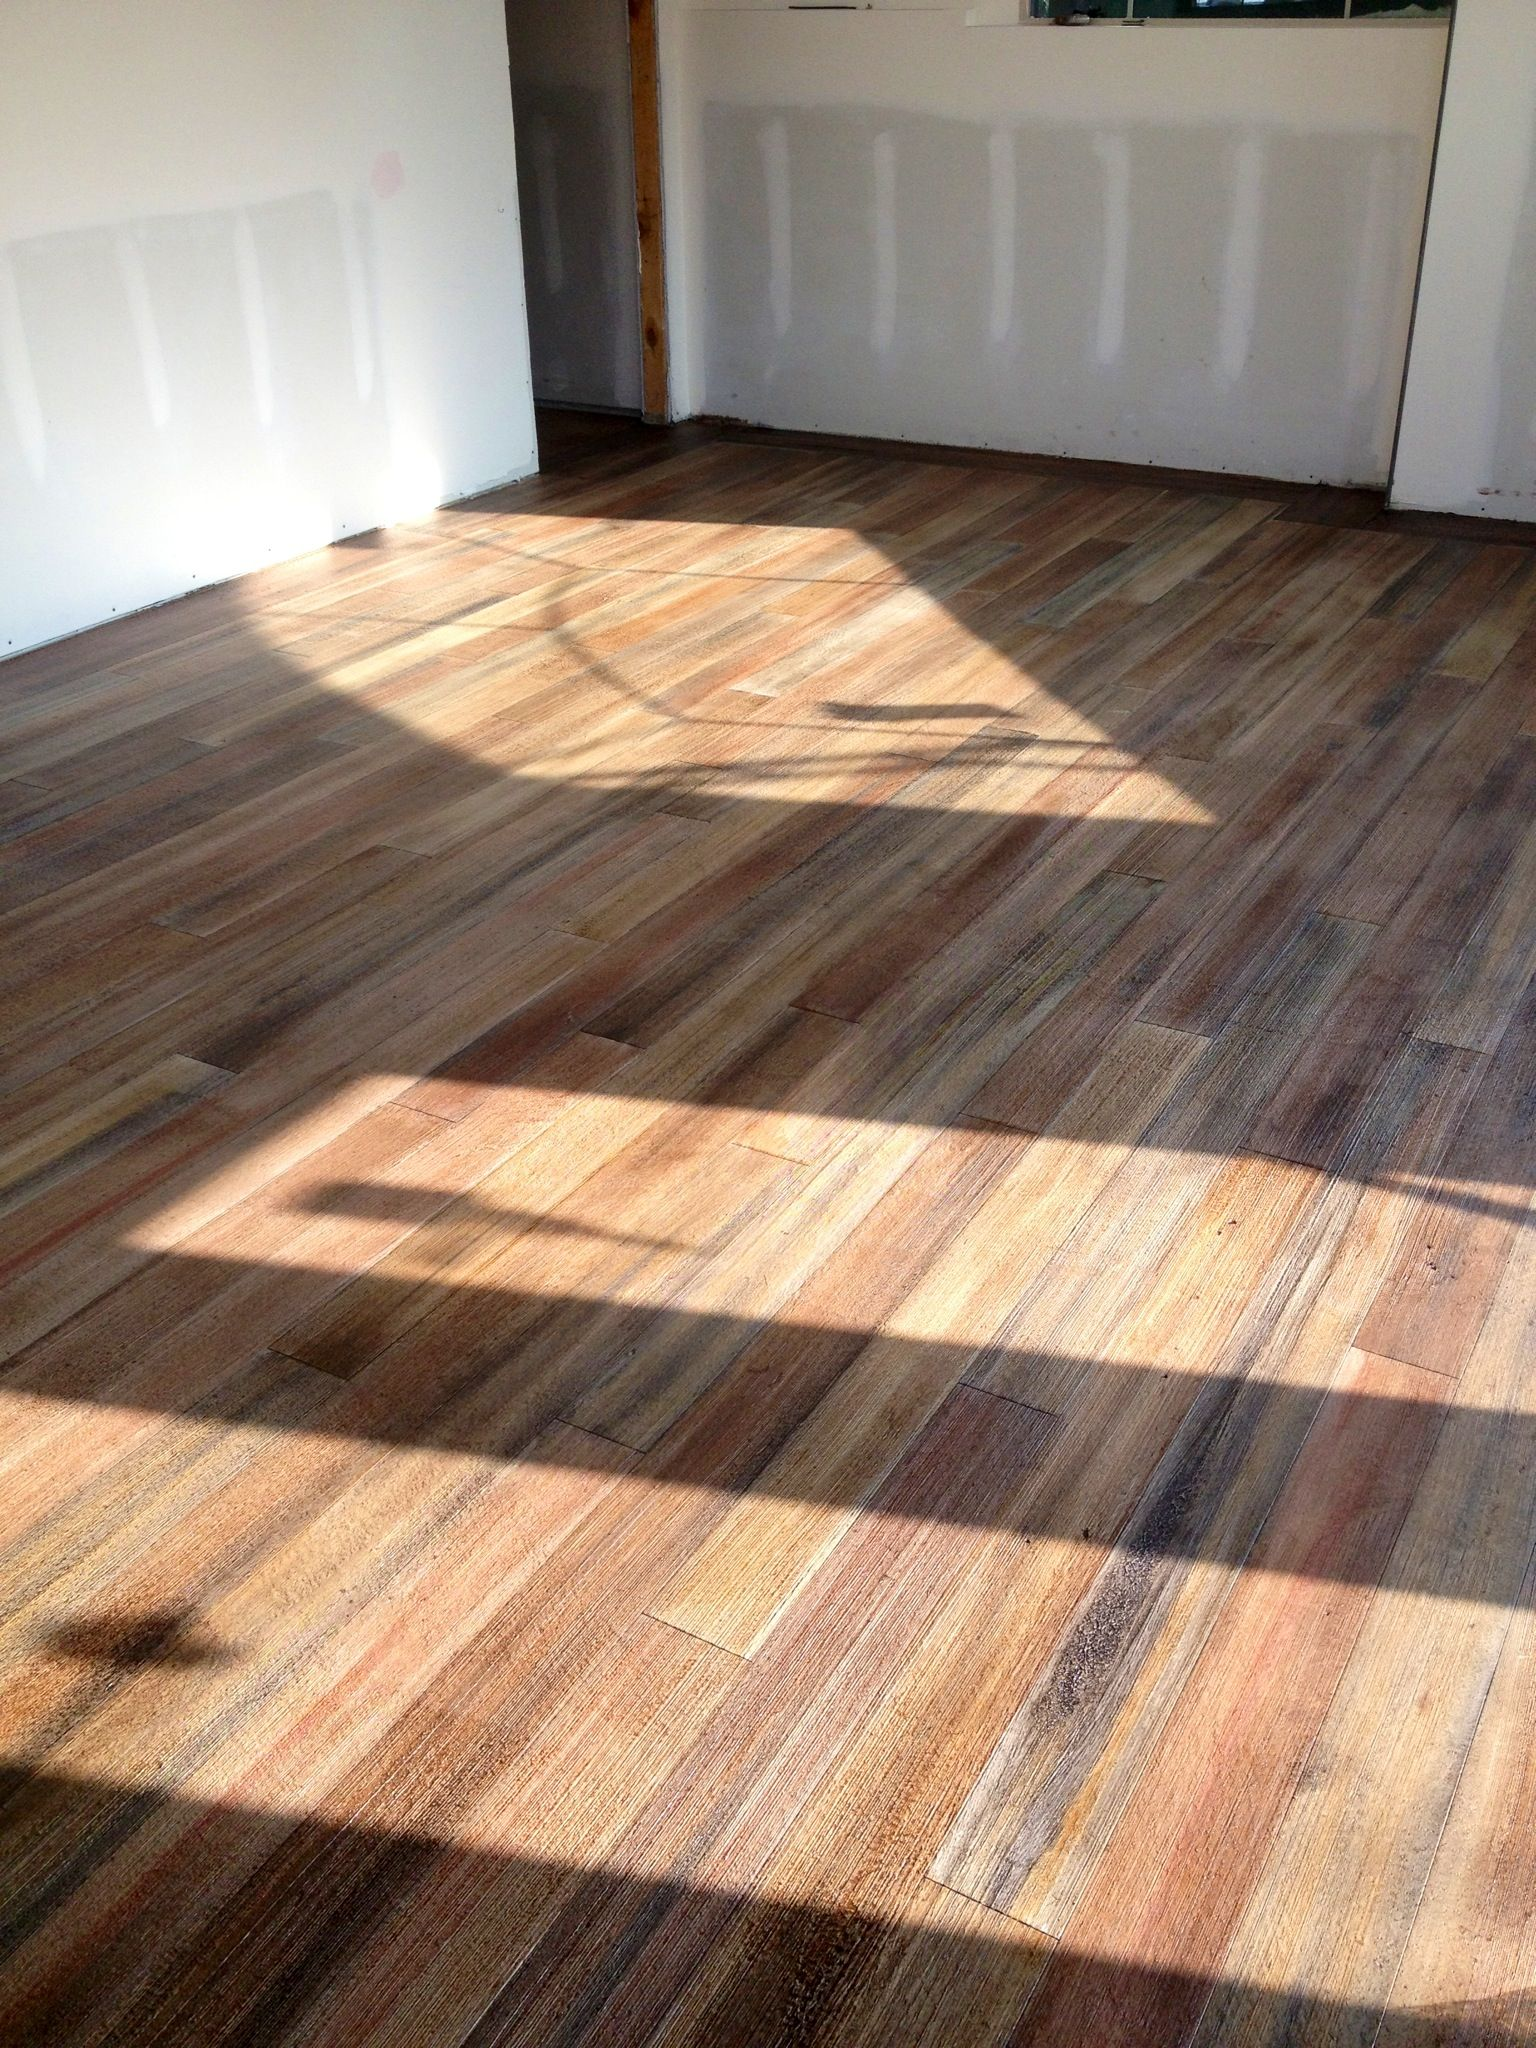 Concrete floor made to look like wood. | Concrete wood ...